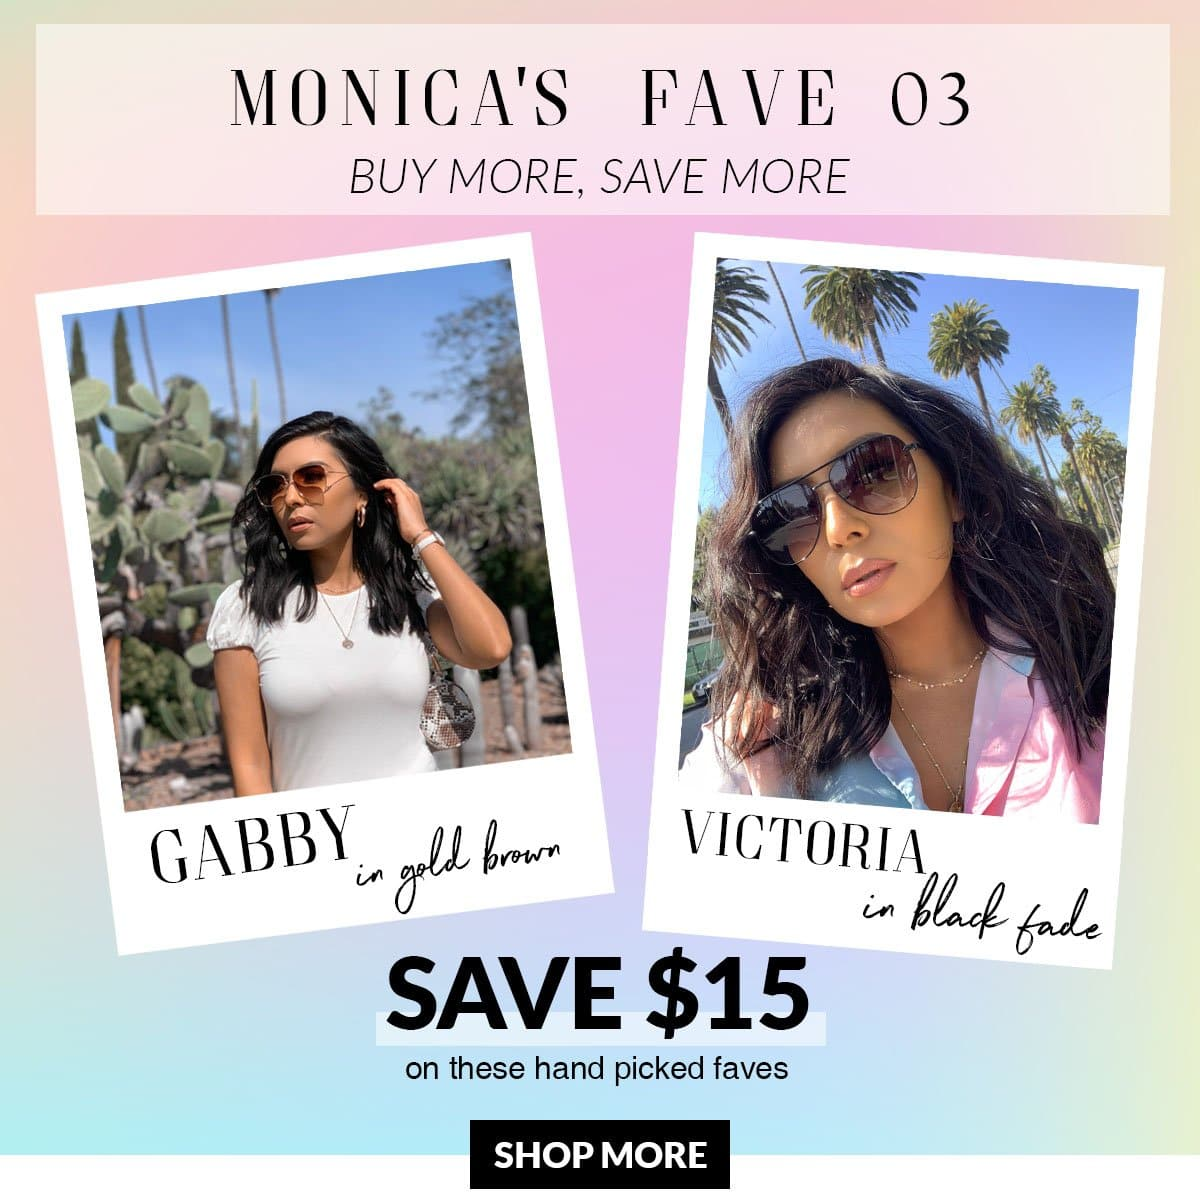 MONICA'S FAVES 03